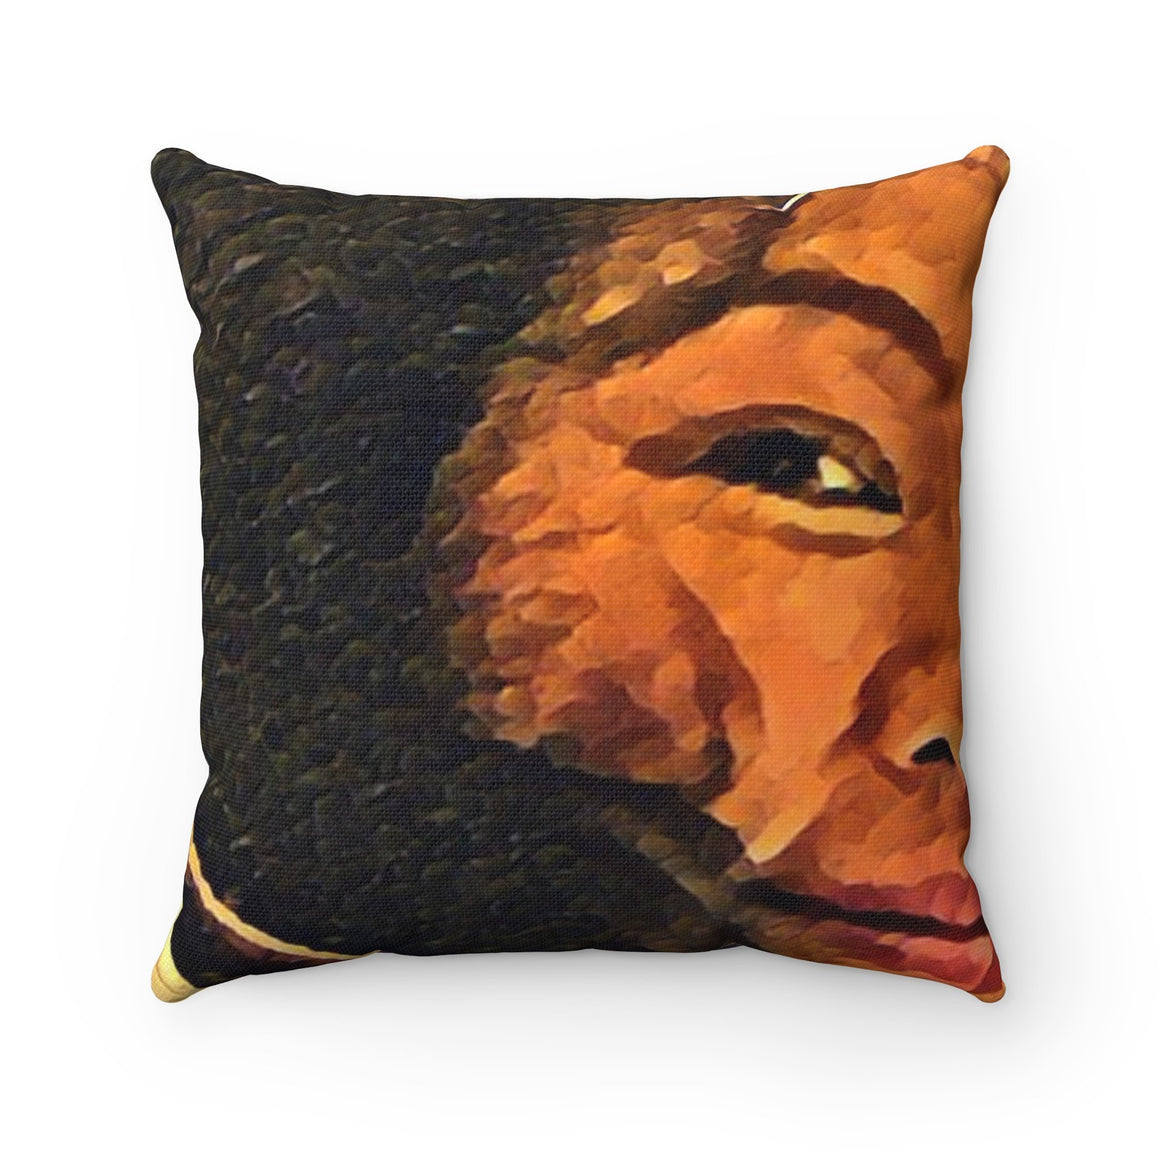 Levi Thang Vintage Face Design G Spun Polyester Square Pillow Case